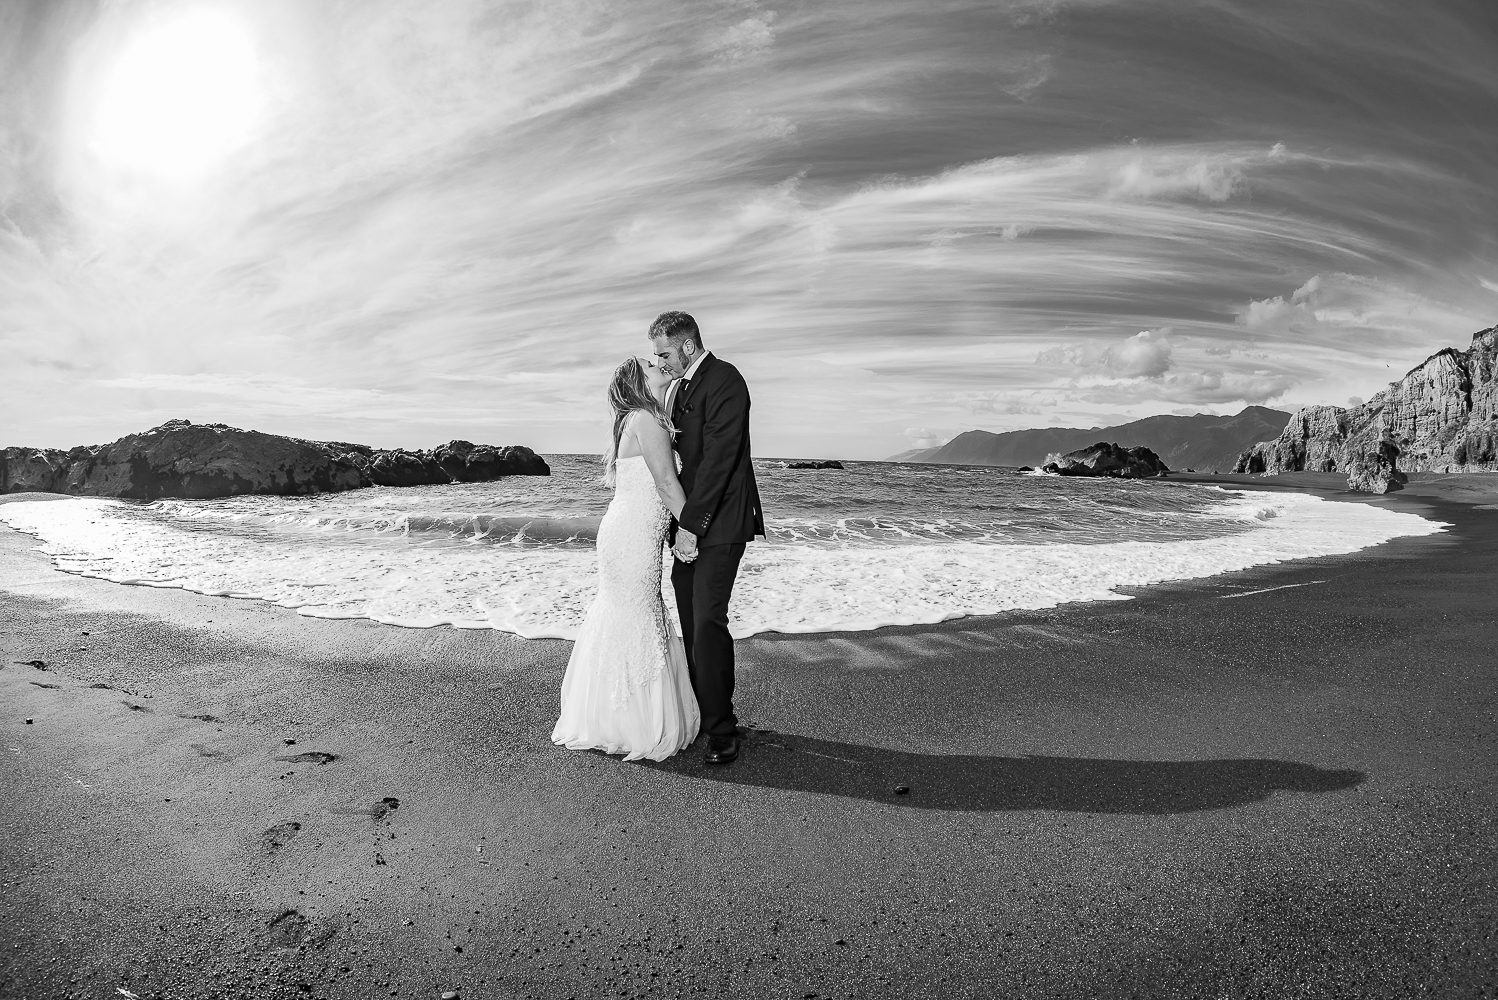 Shelter Cove-Intimate Destination beach Wedding-Parky's Pics Photography-Humboldt County_-33.jpg